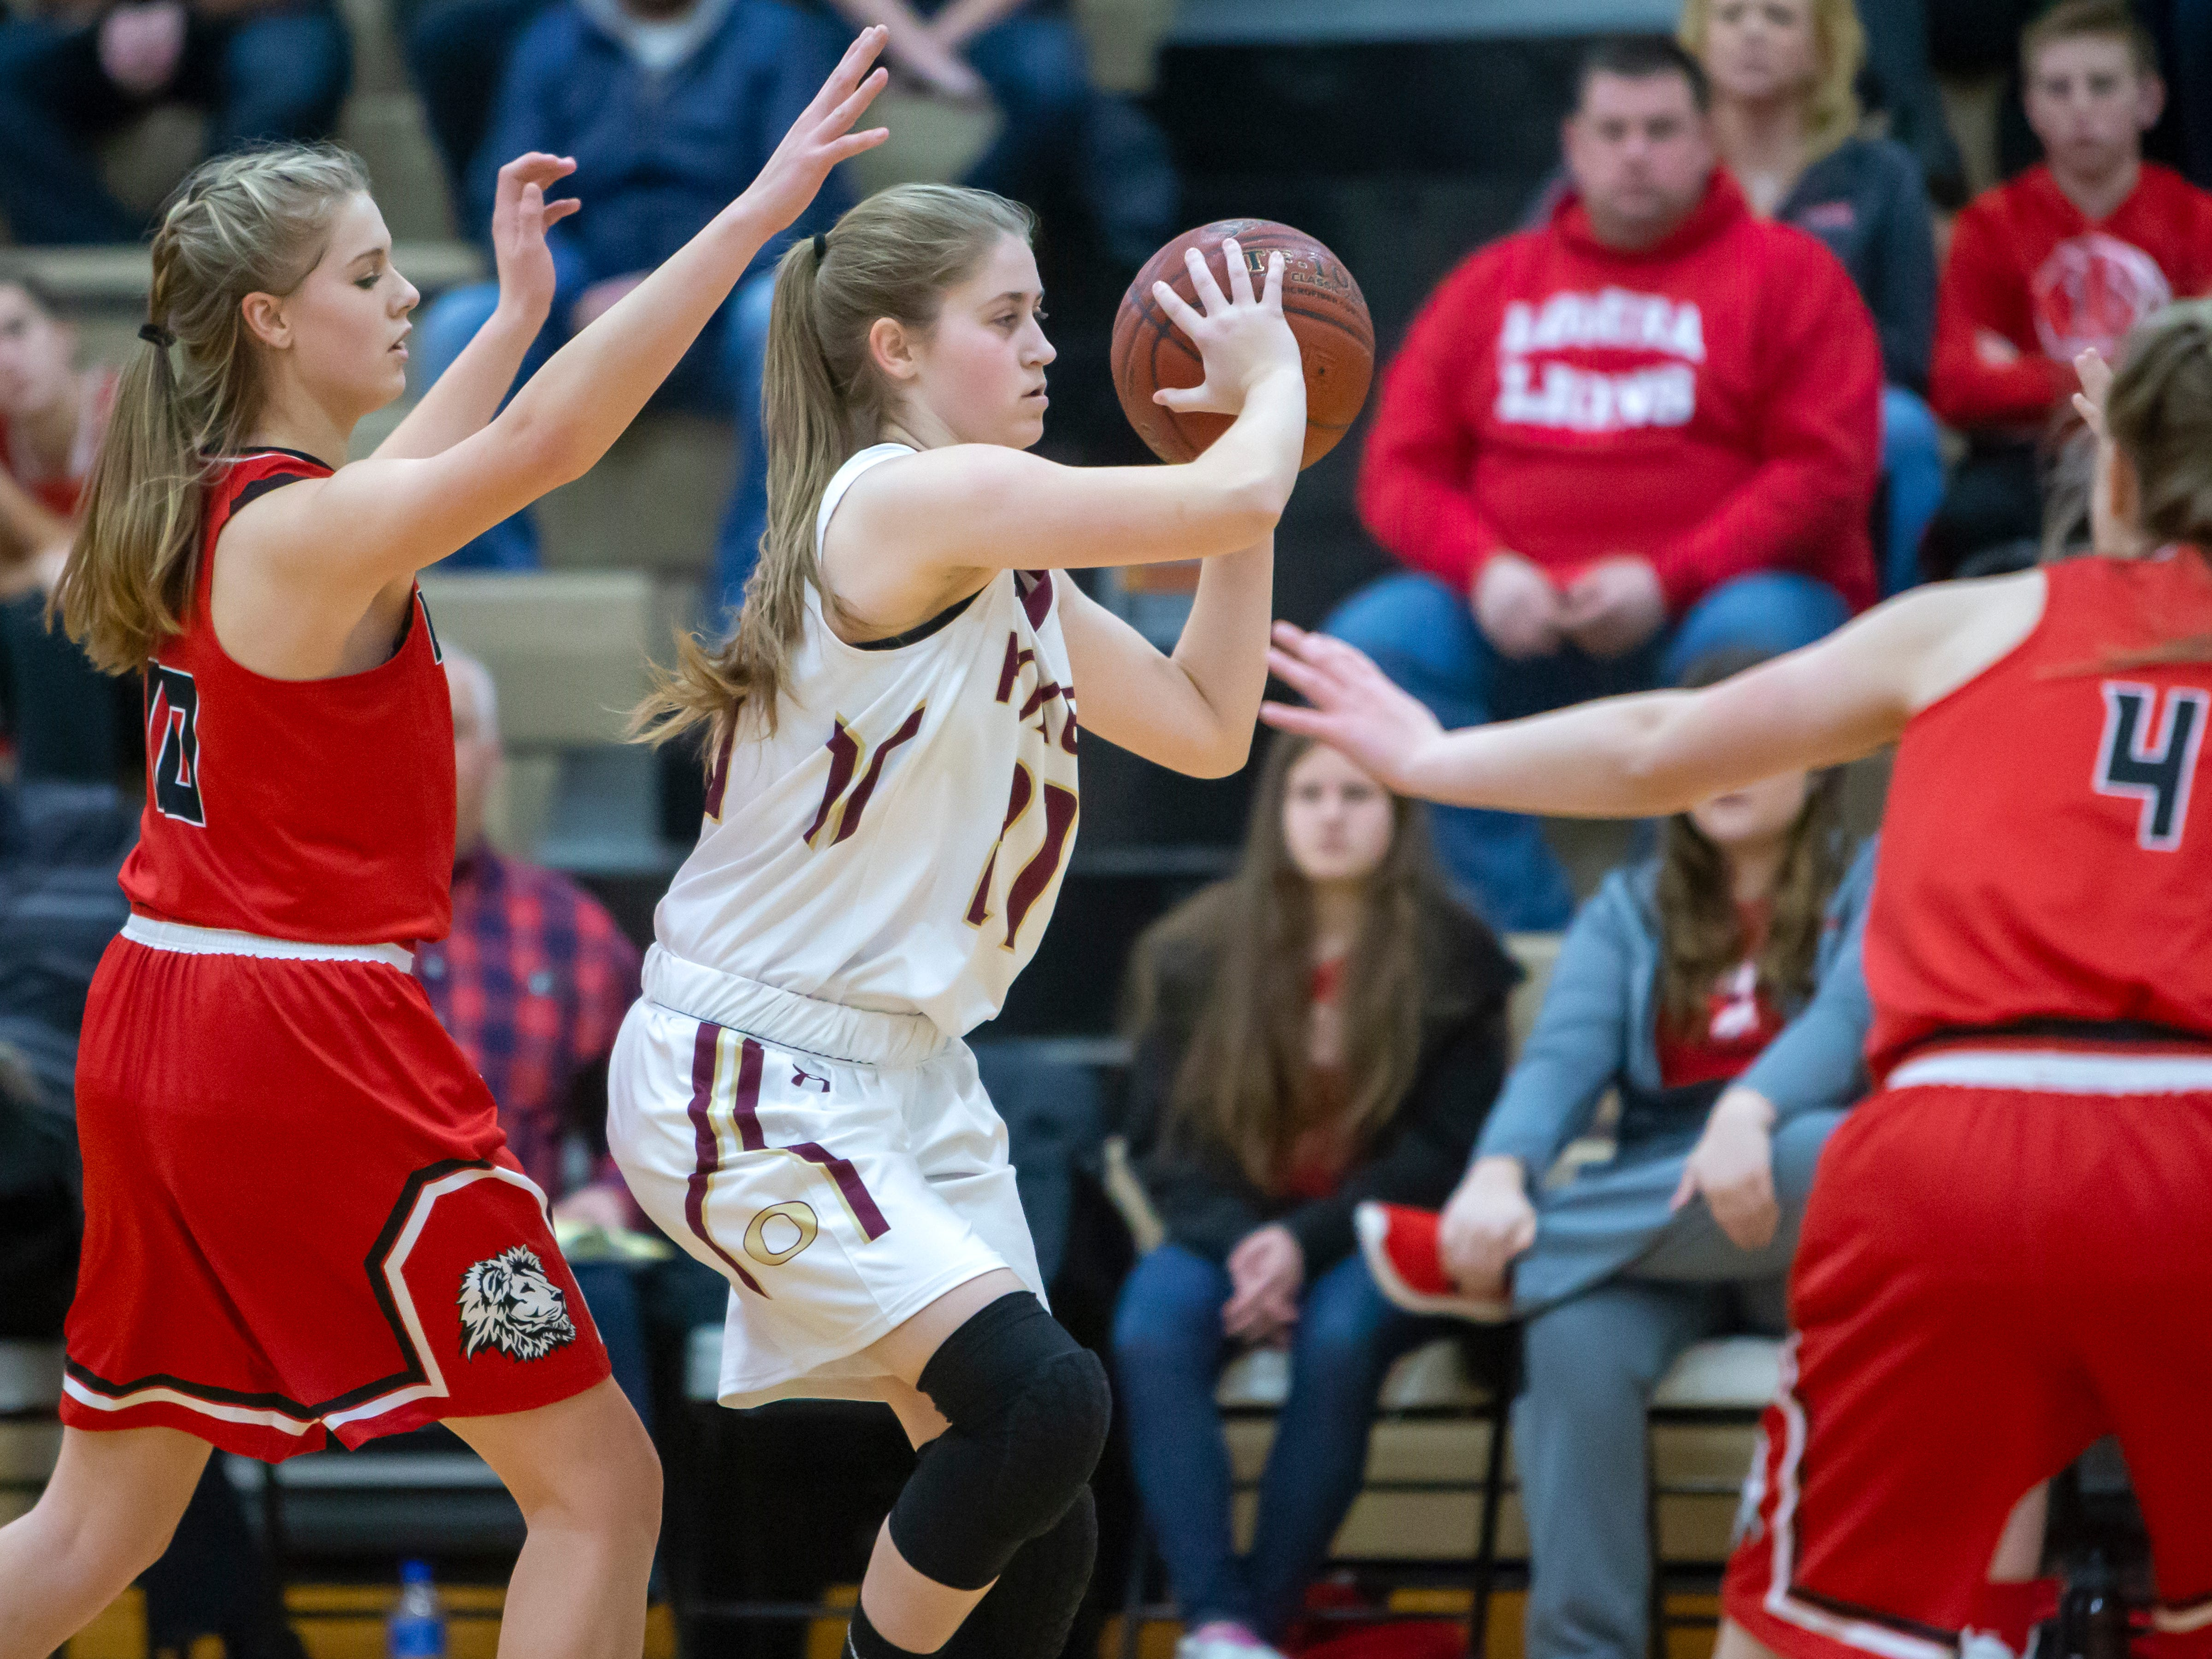 Omro's Tabitha Kilgas throws a pass during the game against Lomira at Omro High School on Friday, December 14, 2018.